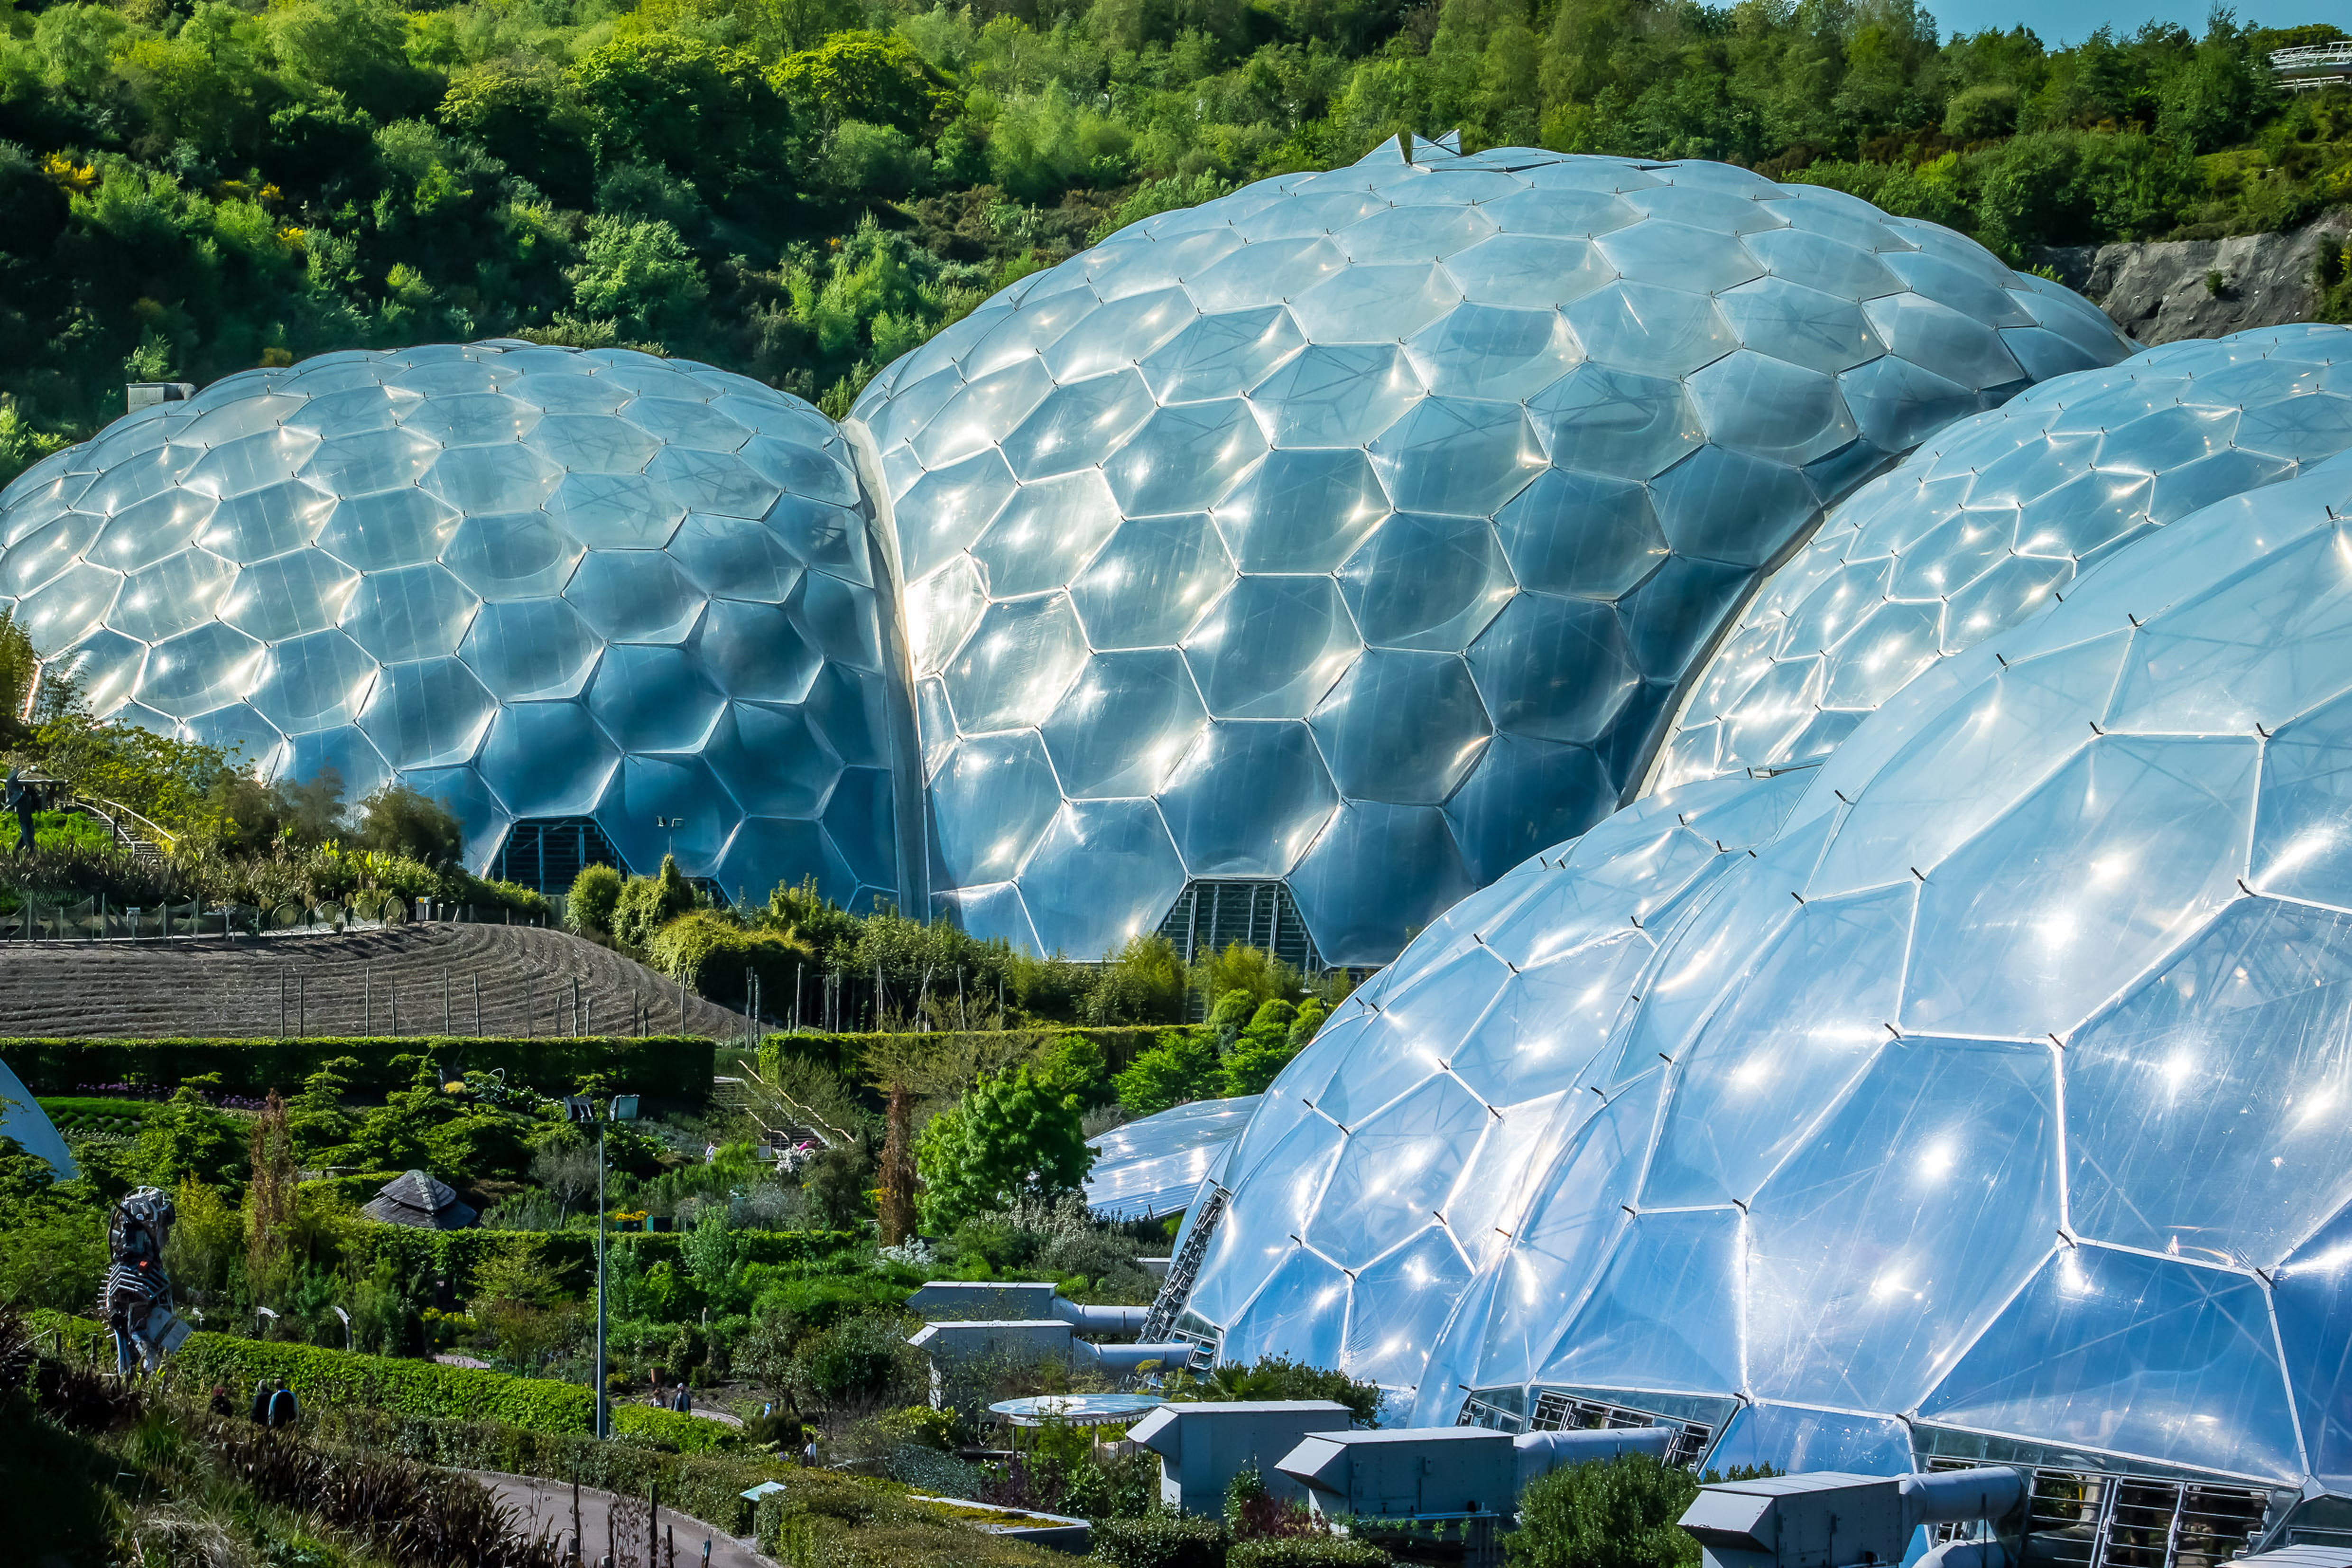 Rainforest Biome Of Eden Project In Cornwall UK